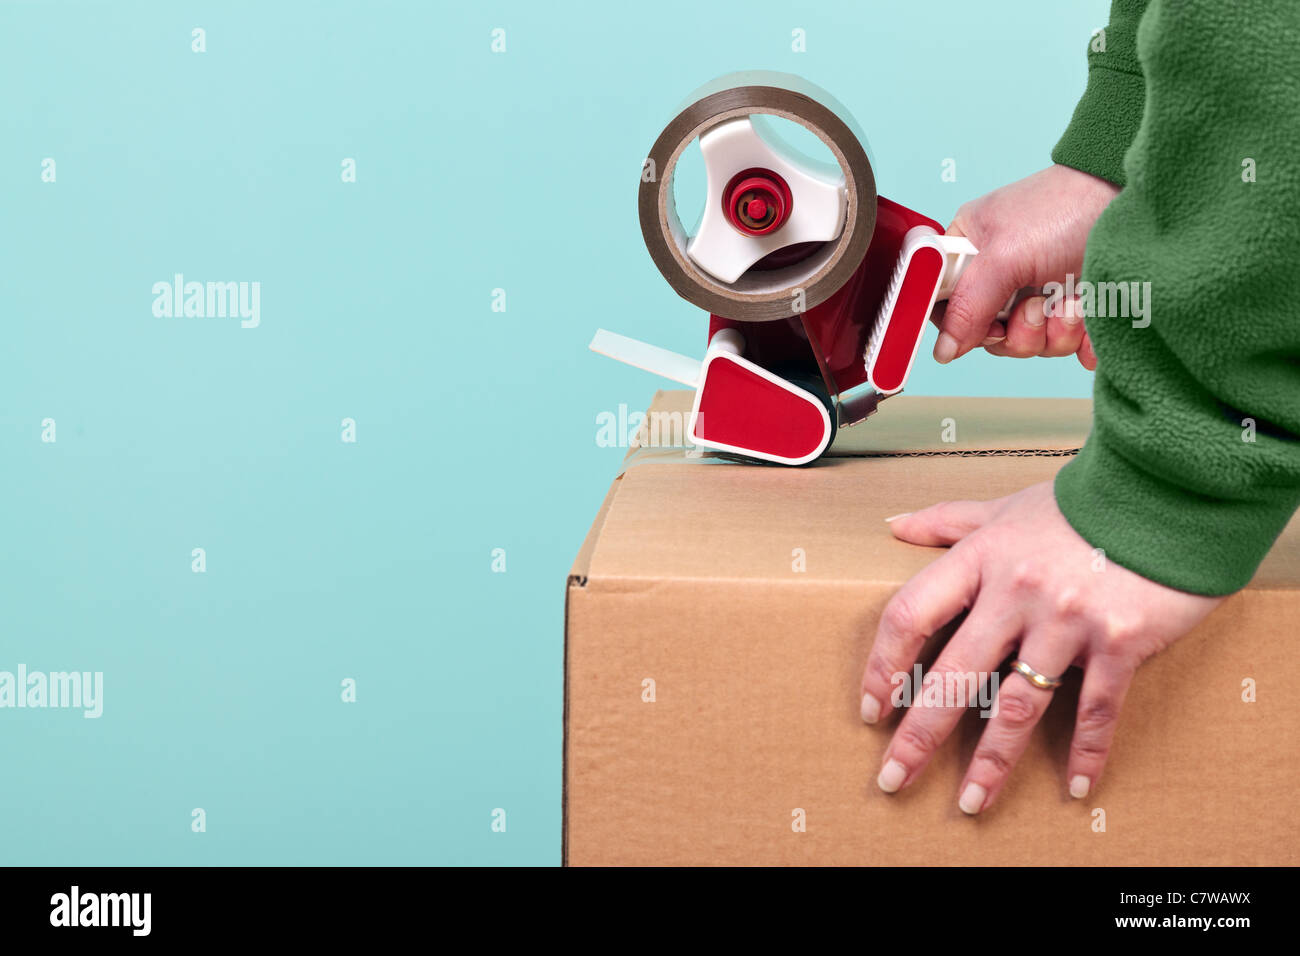 Photo of a womans hands taping up a cardboard box, can be used for removal or logistics related themes. - Stock Image